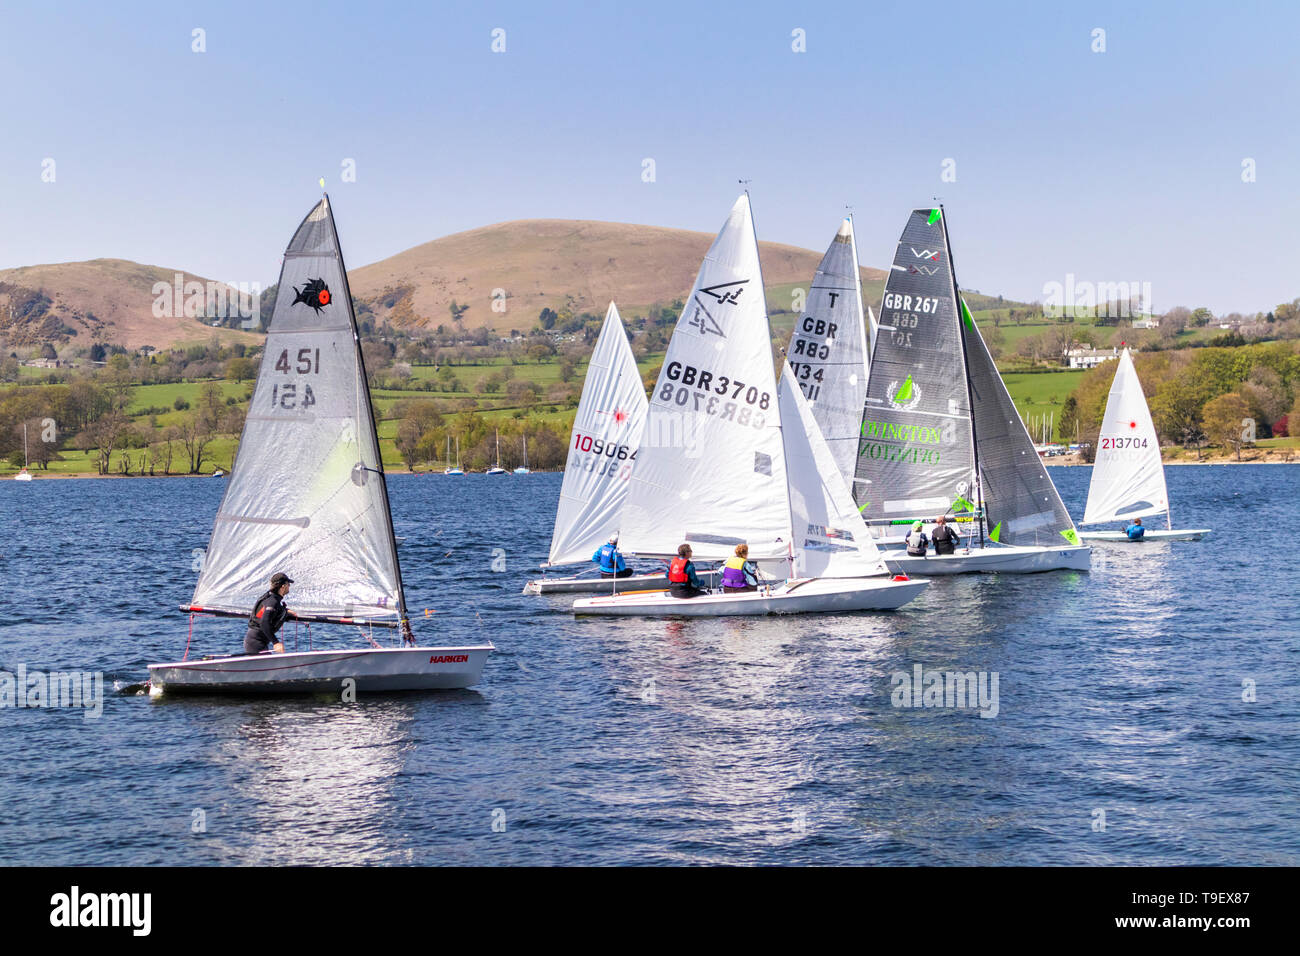 The start of a sailing race at Ullswater Yacht Club, Ullswater, Cumbria UK - Stock Image